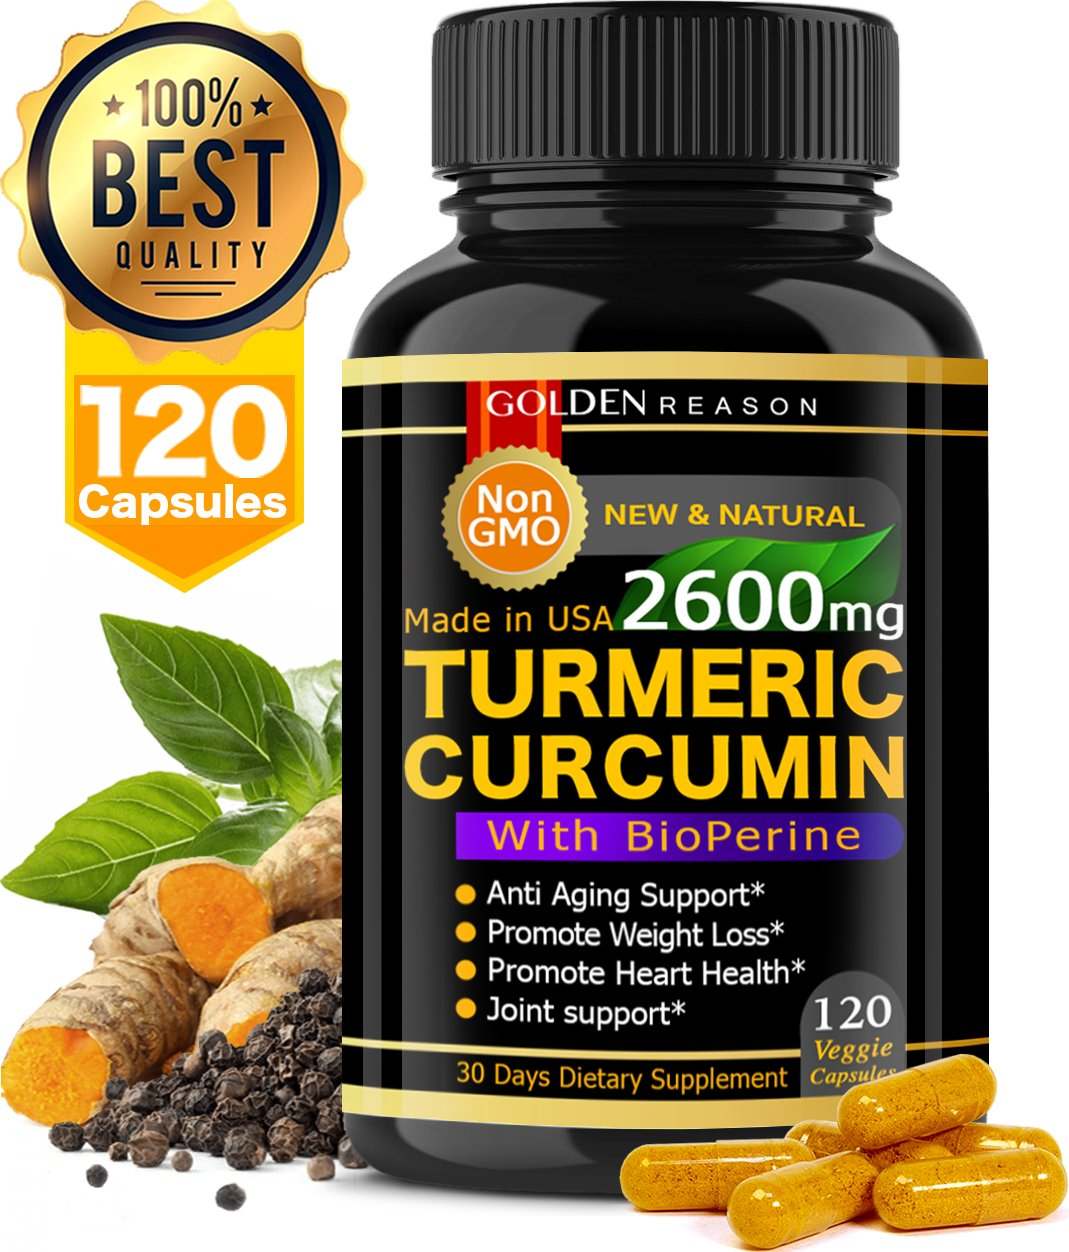 Turmeric Curcumin 2600mg. Anti Aging Support. Joint Support. Promotes Natural Weight Loss and Heart Health, with Bioperine Black Pepper 120 High Quality Veggie Capsules. Non GMO. Made in USA. 120